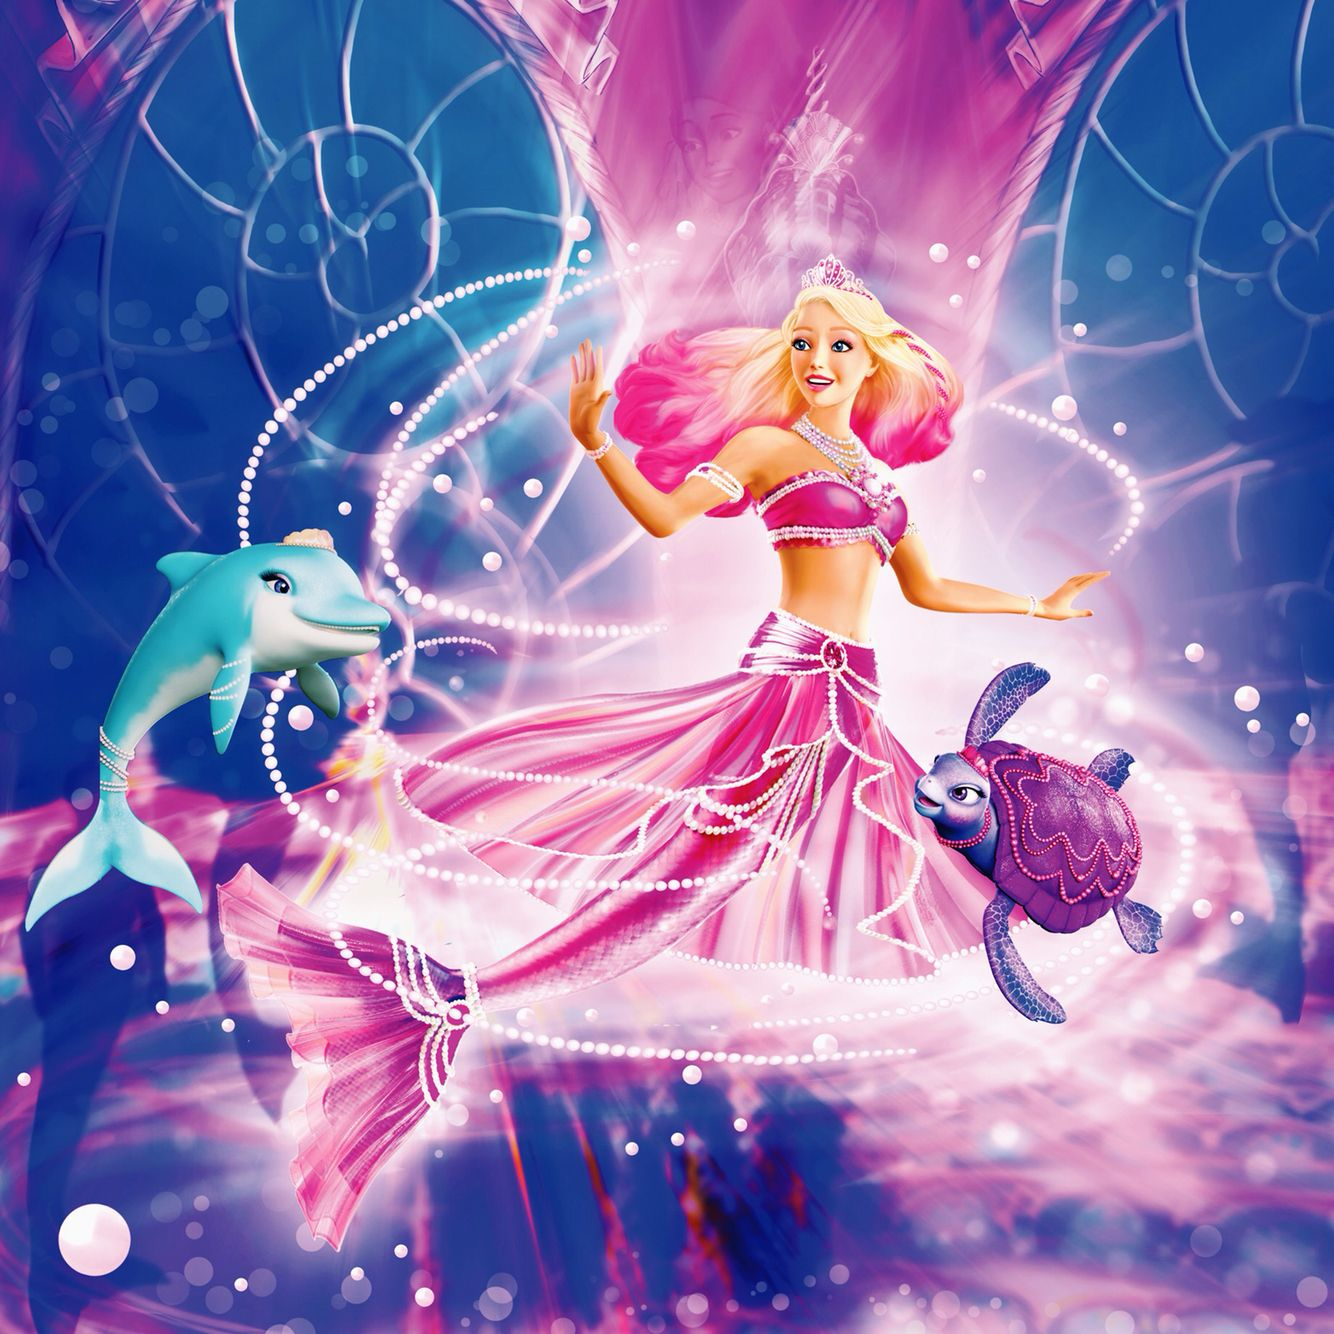 Princess lumina from barbie pearl princess l - Barbie princesses ...